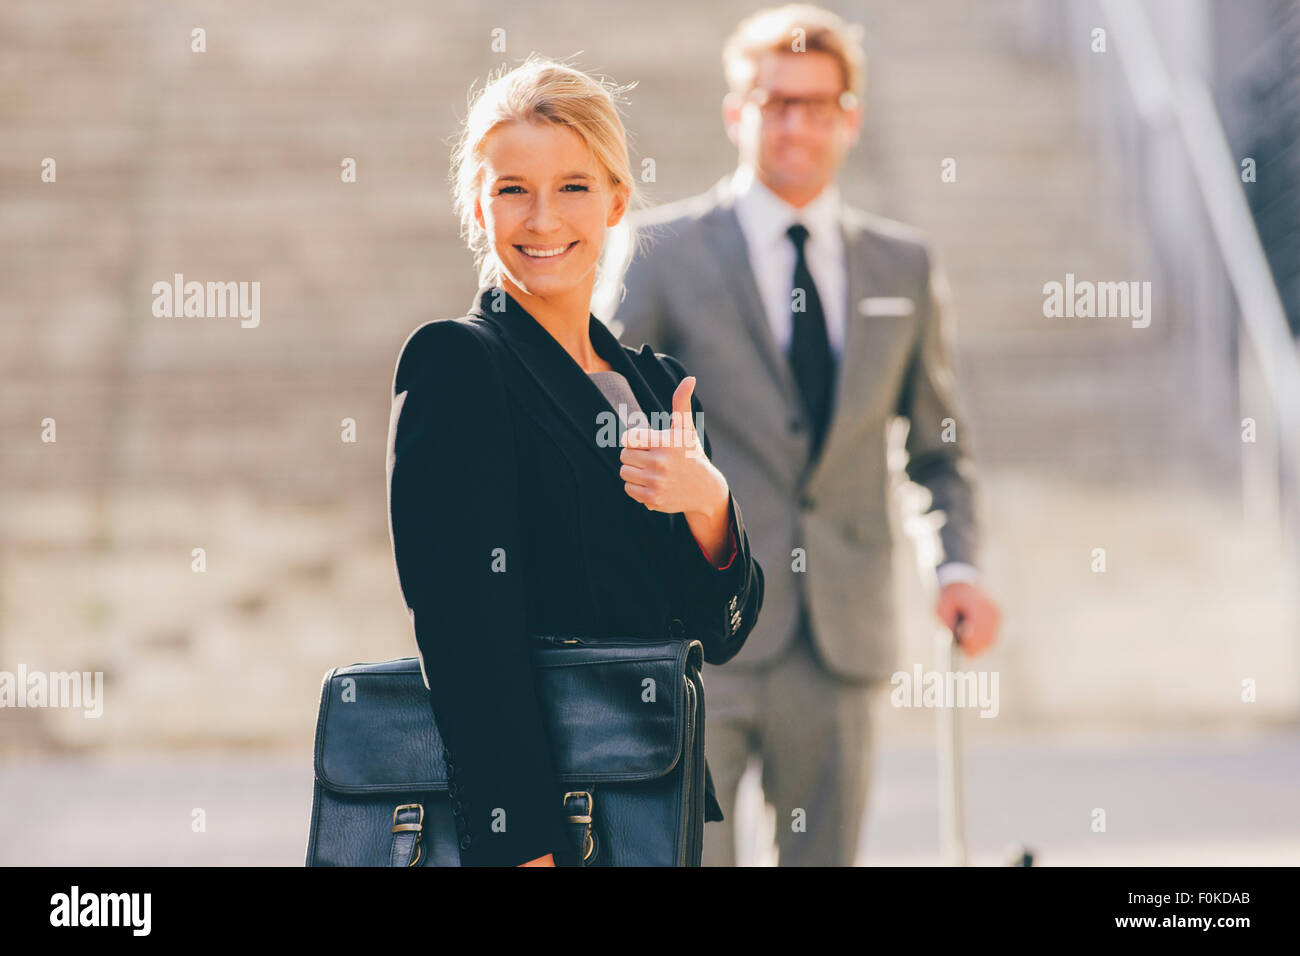 Optimiste businesswoman with woman in background Photo Stock